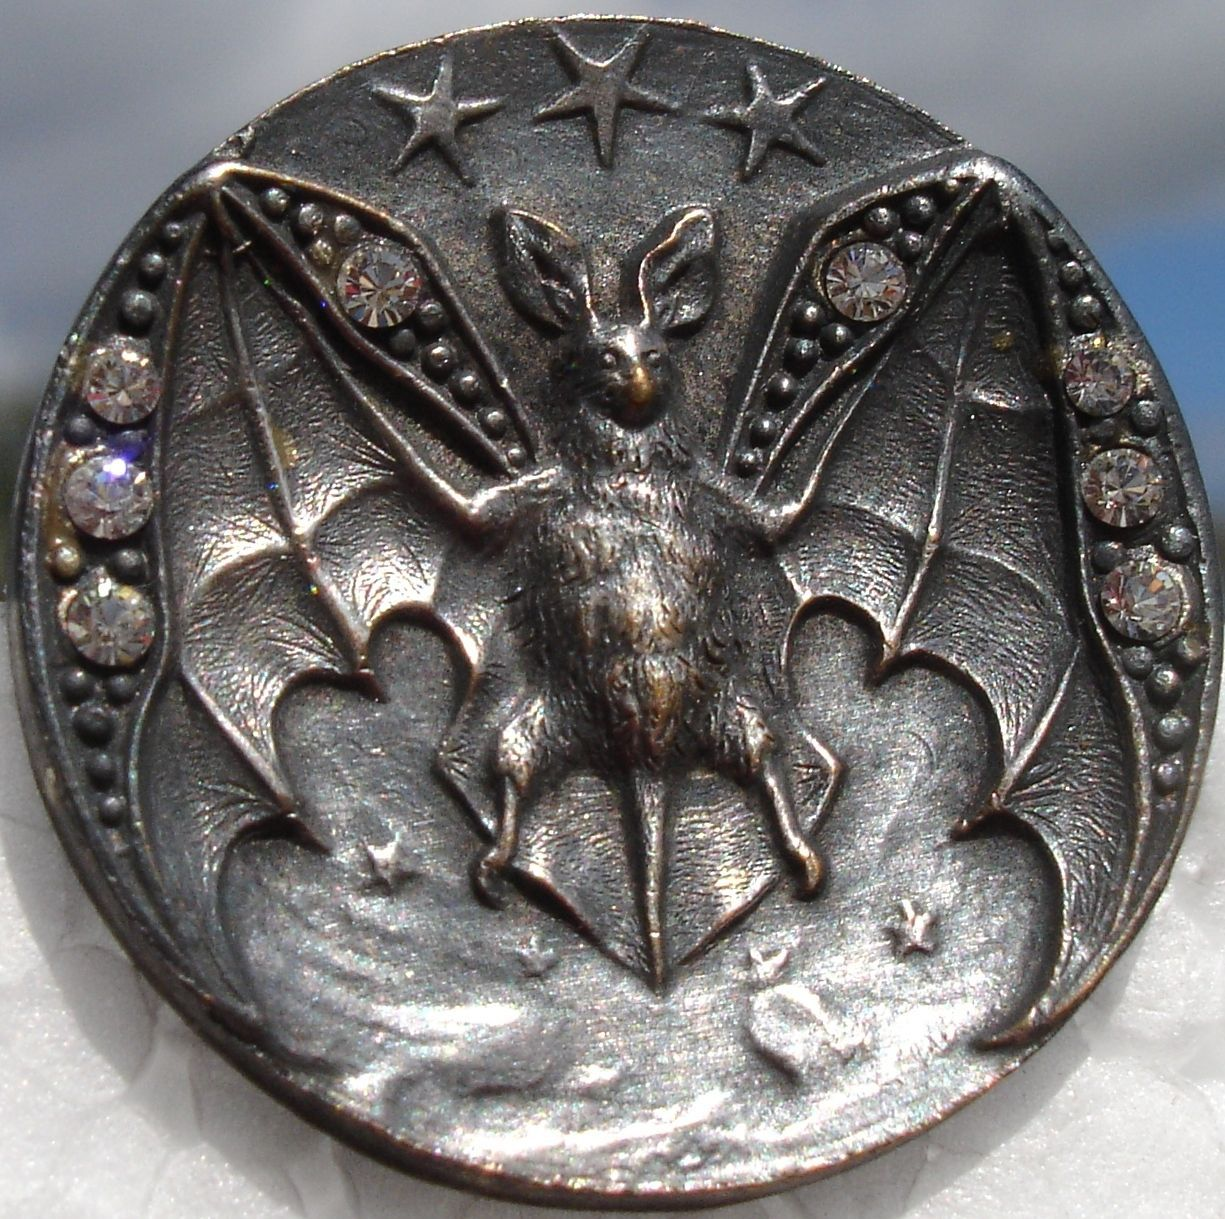 1940s French metal bat button with rhinestones (US $74.50)